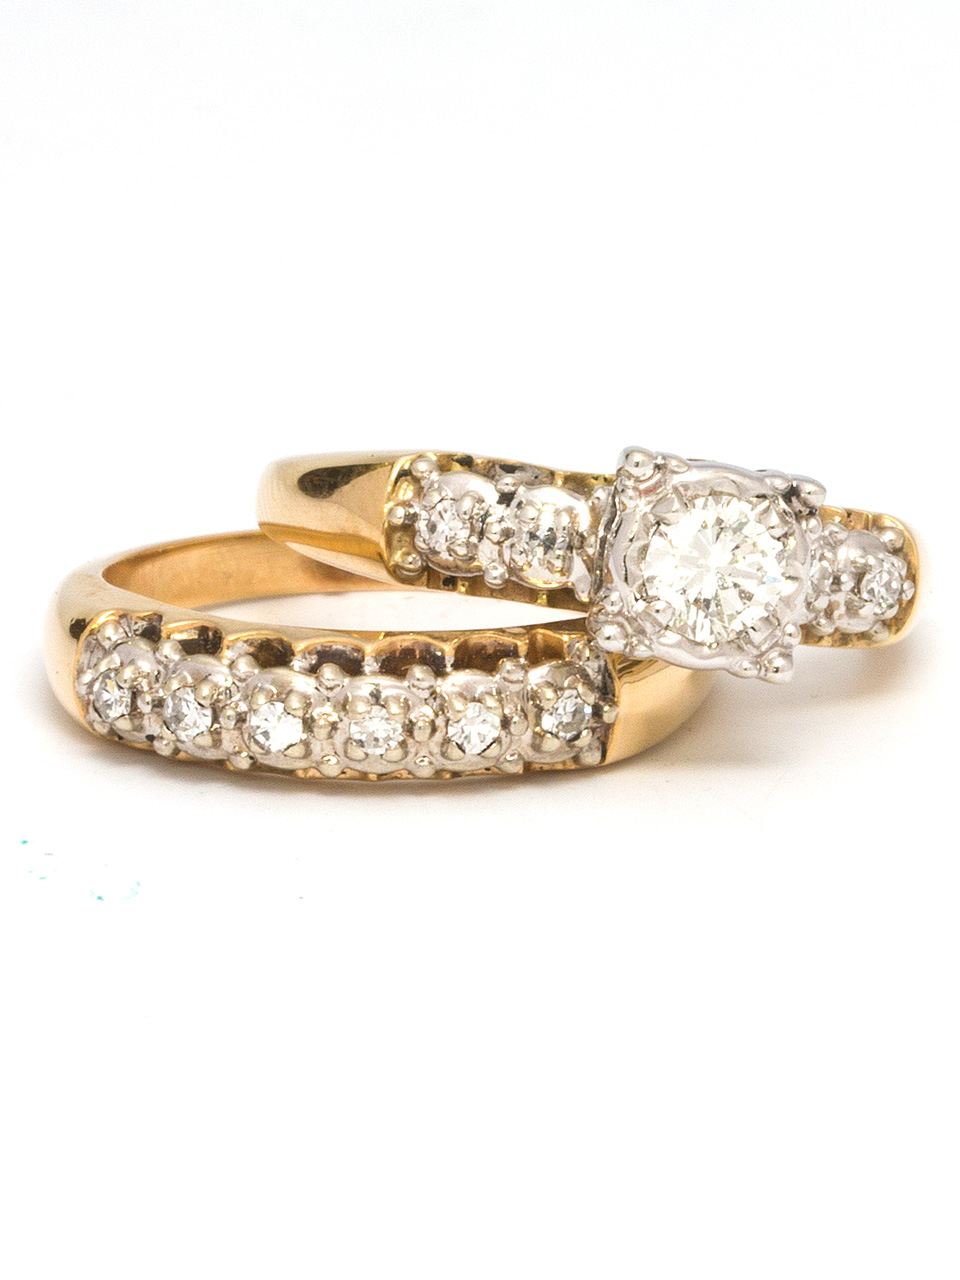 14K YG Diamond Wedding Set 0.25 H VS-2 1950's